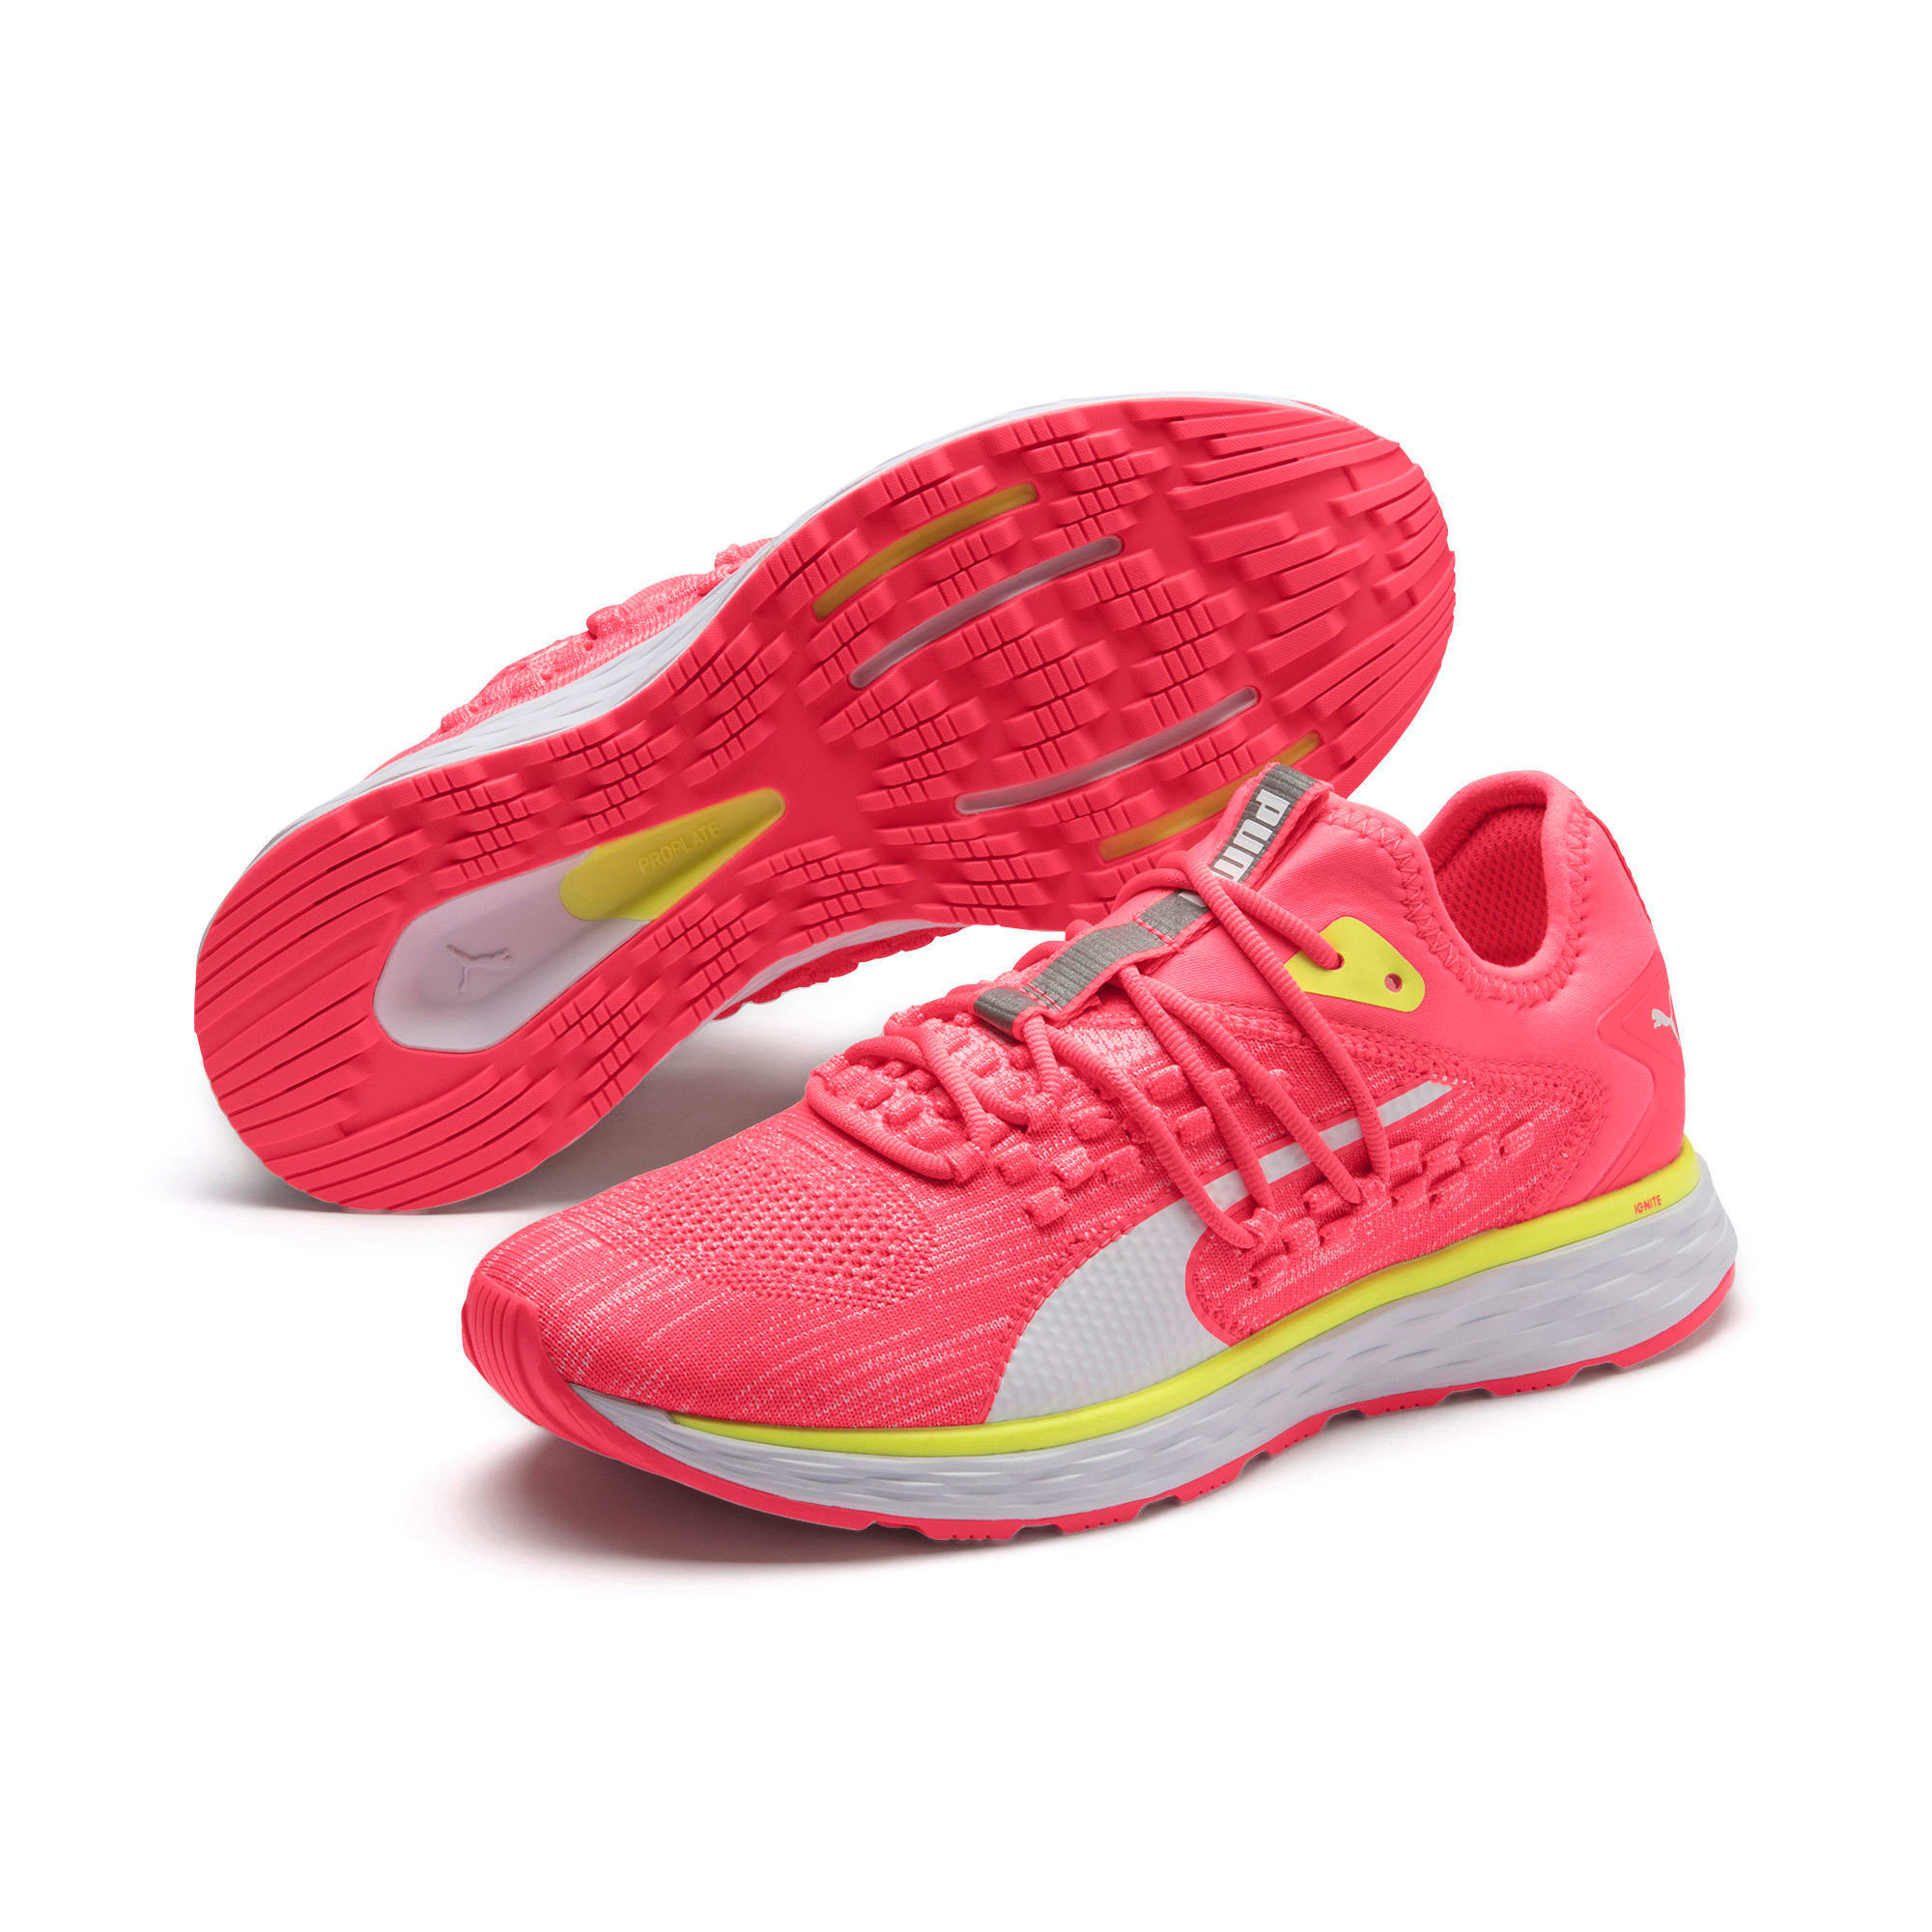 Thumbnail 3 of SPEED 600 FUSEFIT Women's Running Shoes, Pink Alert-Puma White, medium